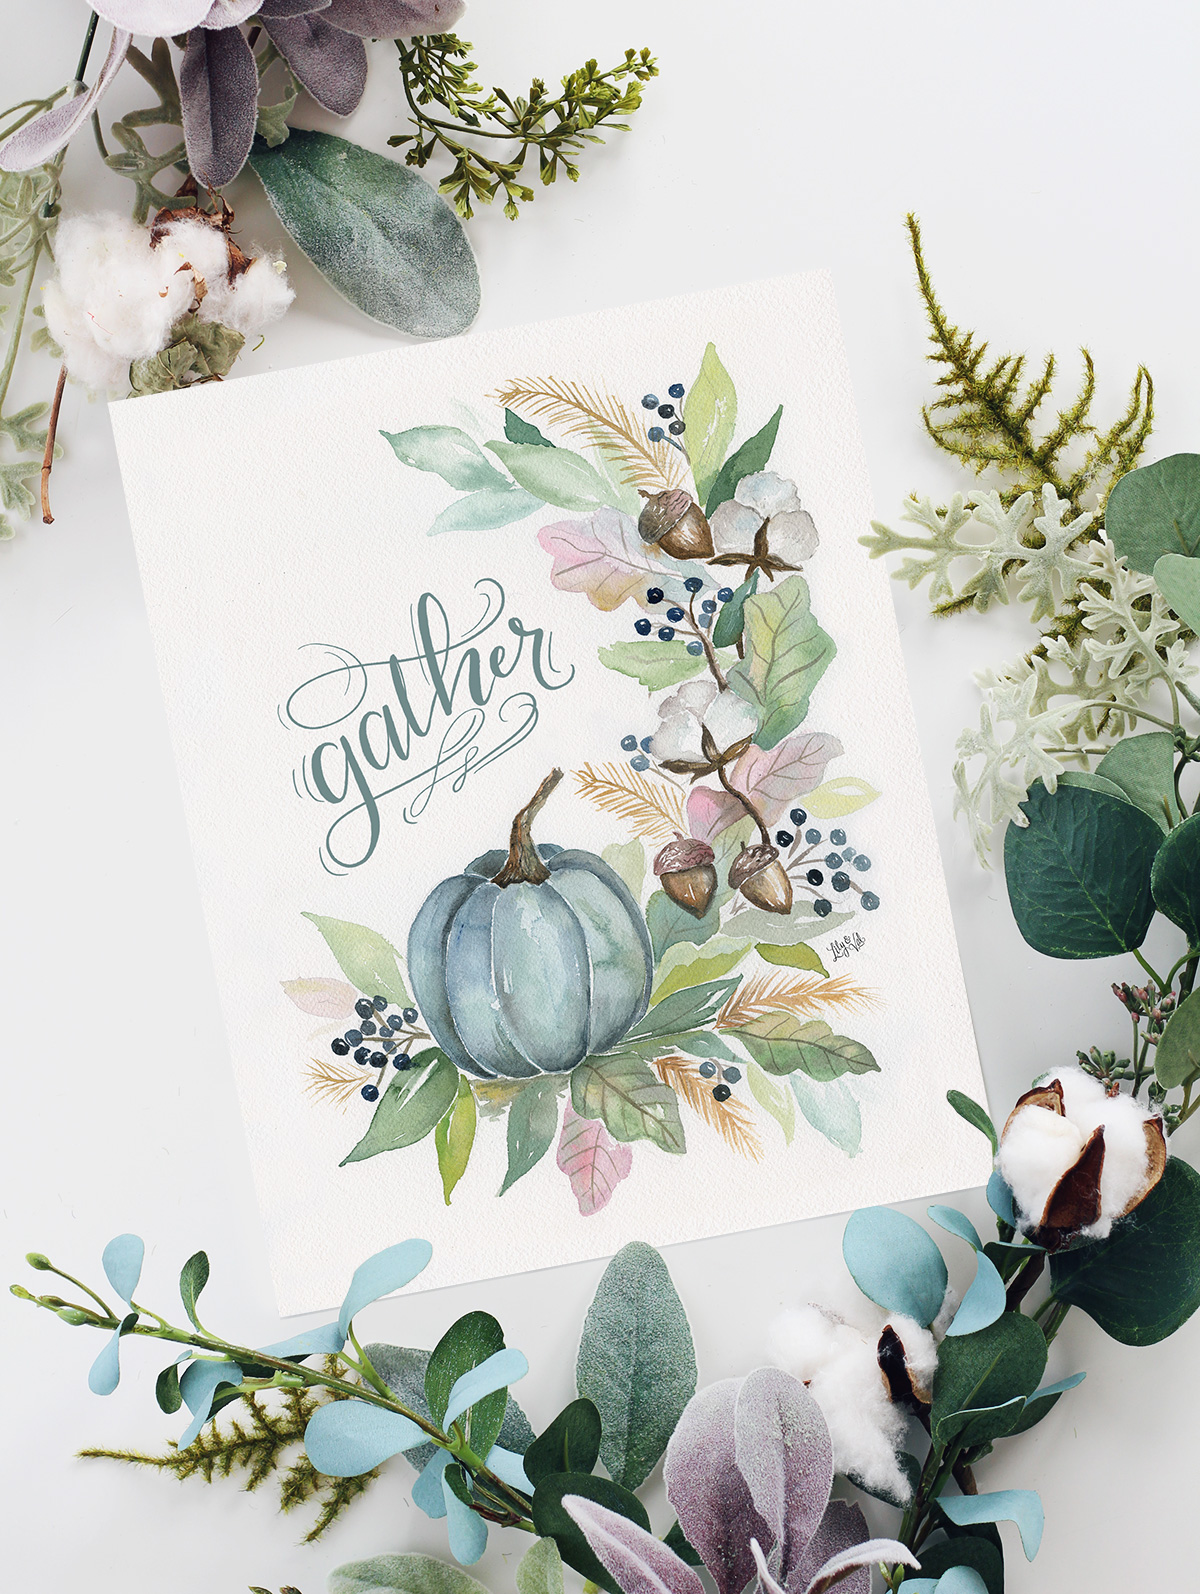 Gather Fall Print | Blue Pumpkin Decor for Fall | Fall Watercolor Art